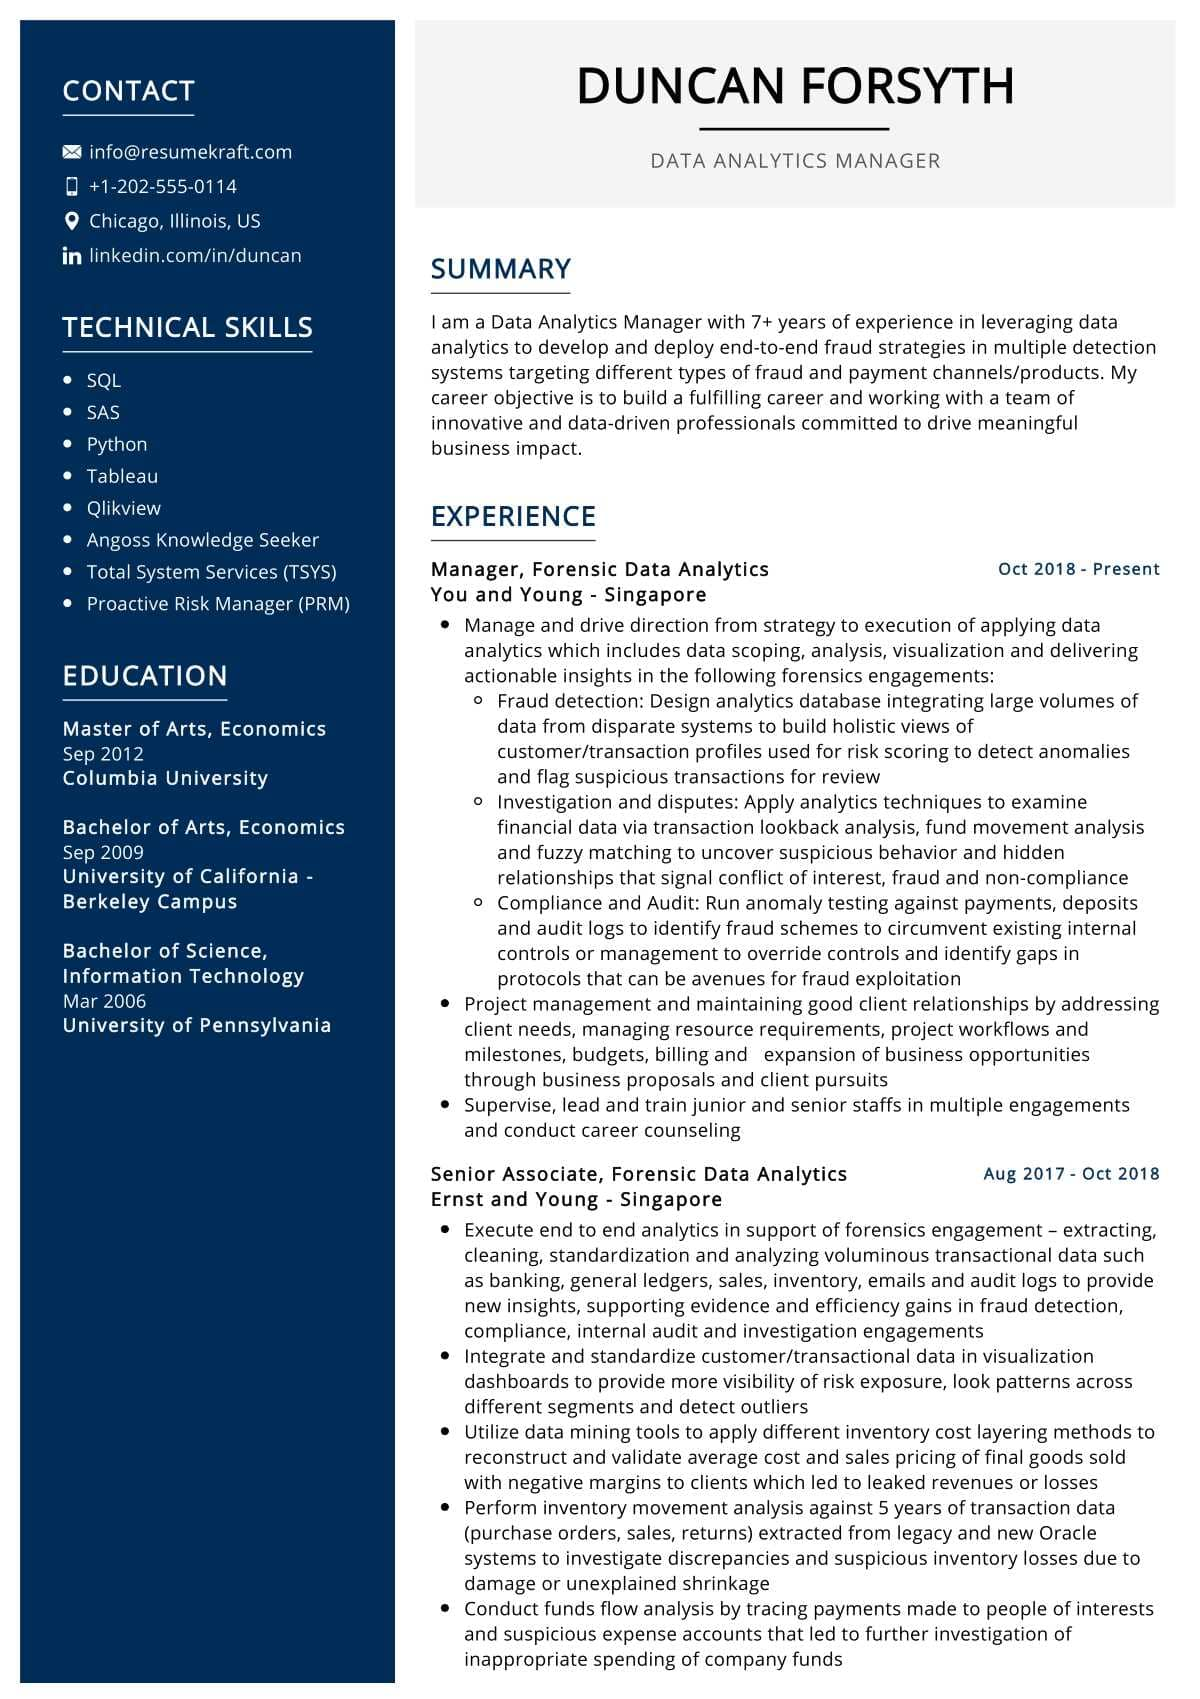 Data Analytics Manager Resume